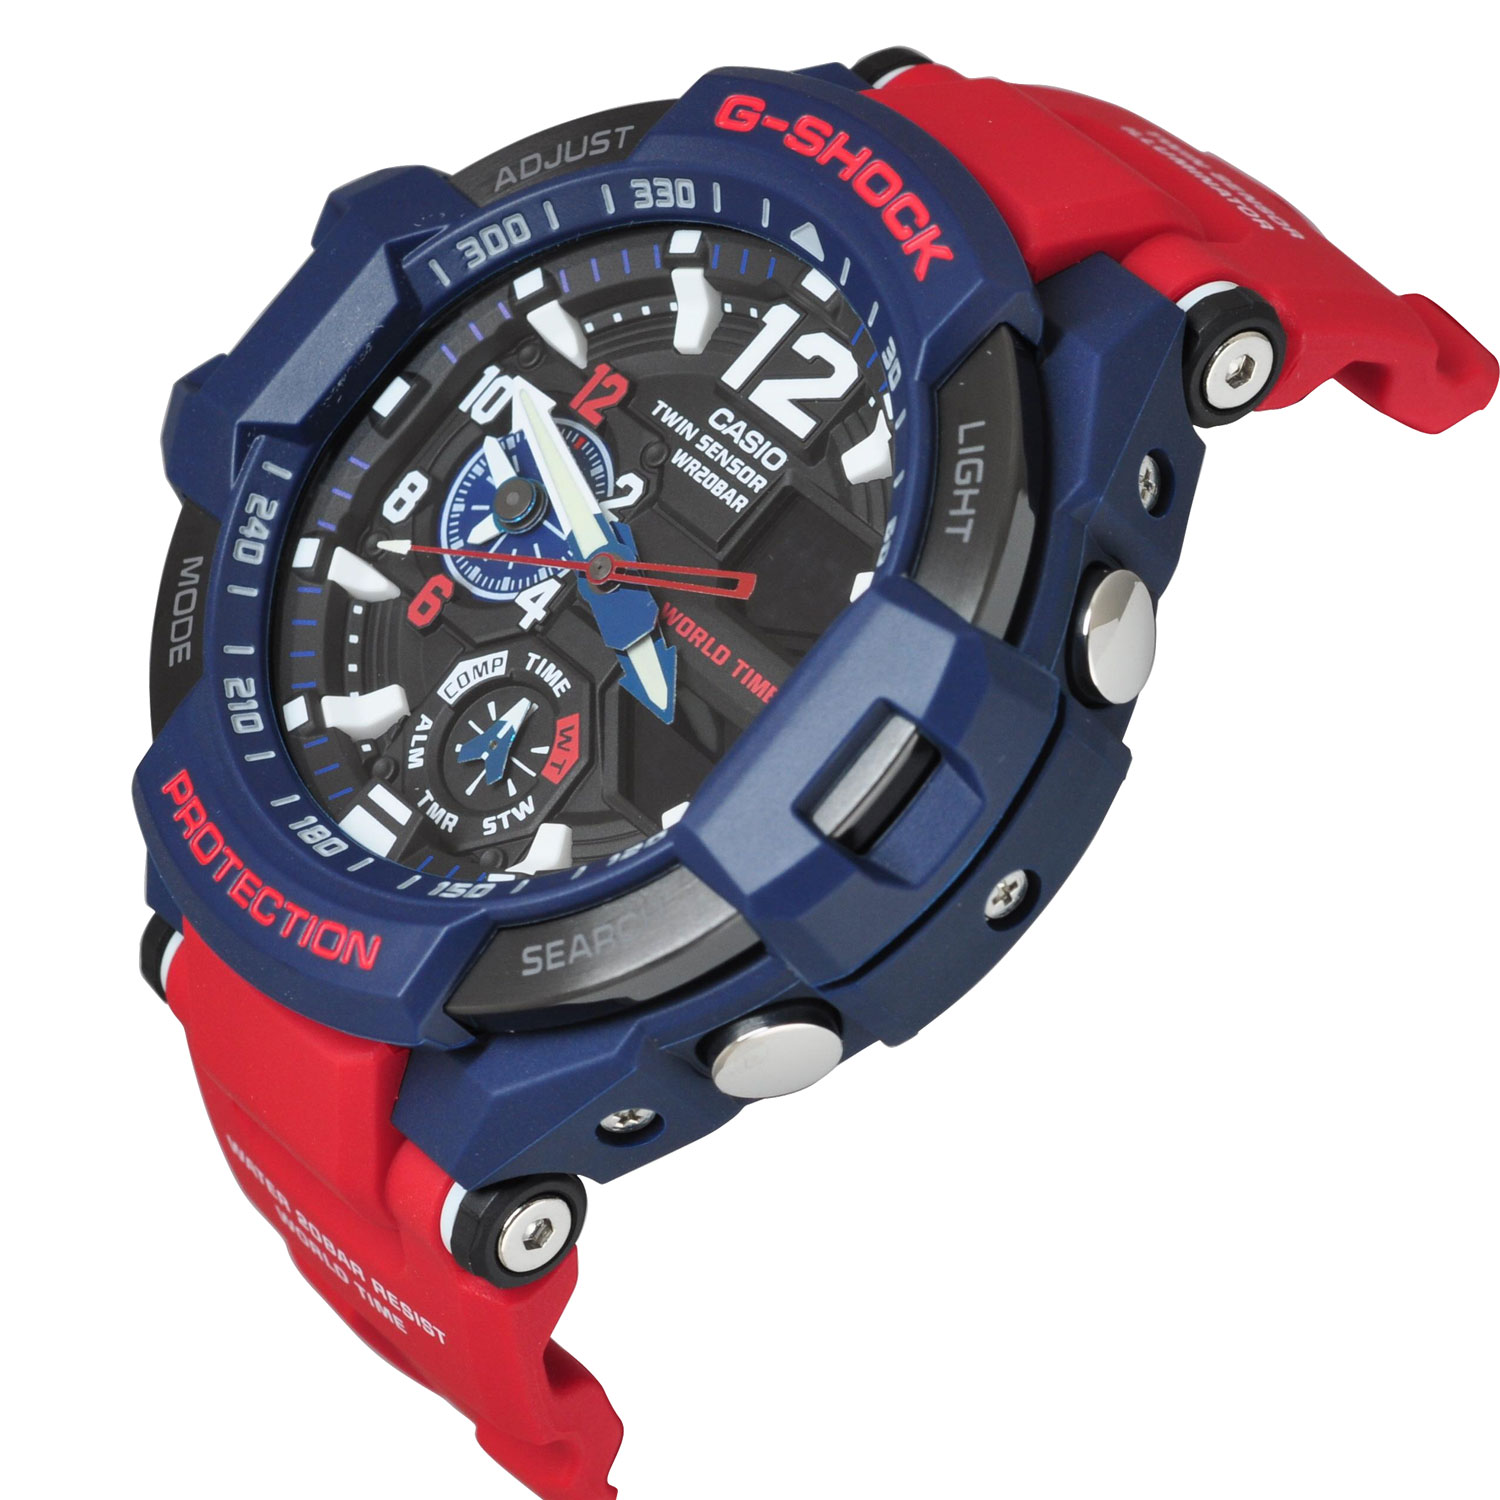 Casio-G-Shock-GA1100-2A-b